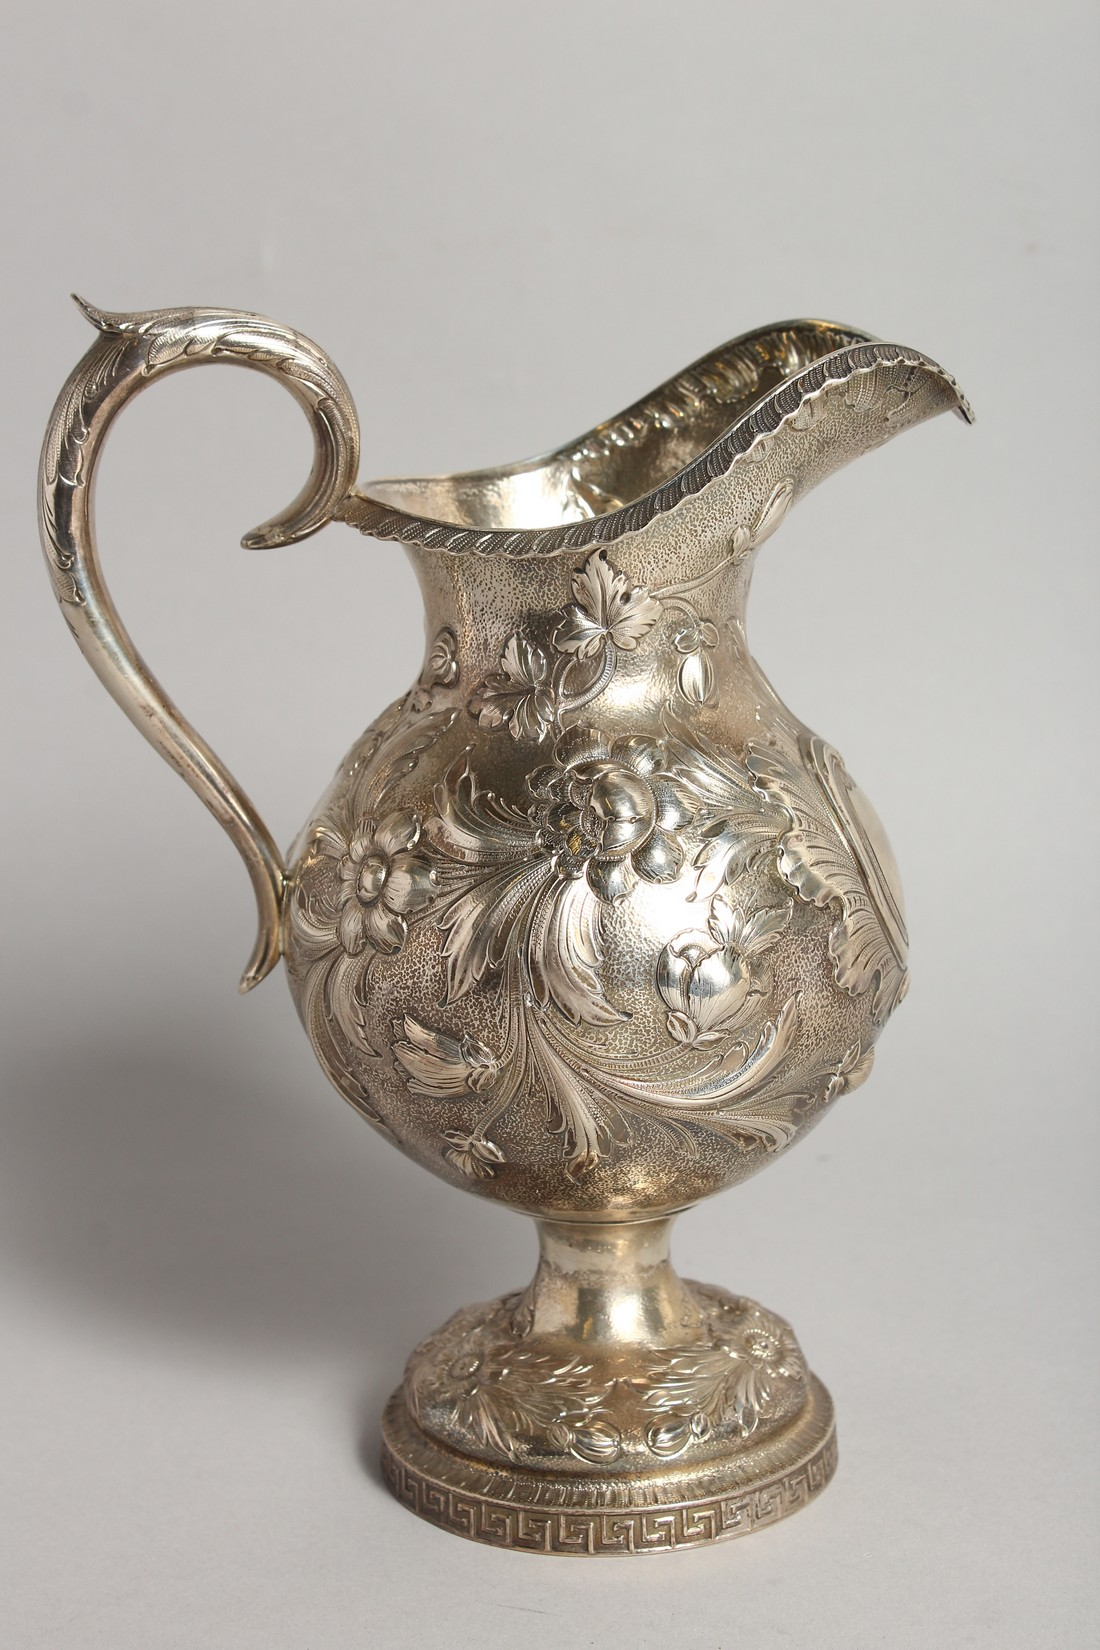 AN R & W WILSON 19TH CENTURY PHILADELPHIA SILVER JUG repousse with flowers and scrolls 8ins high, - Image 3 of 8